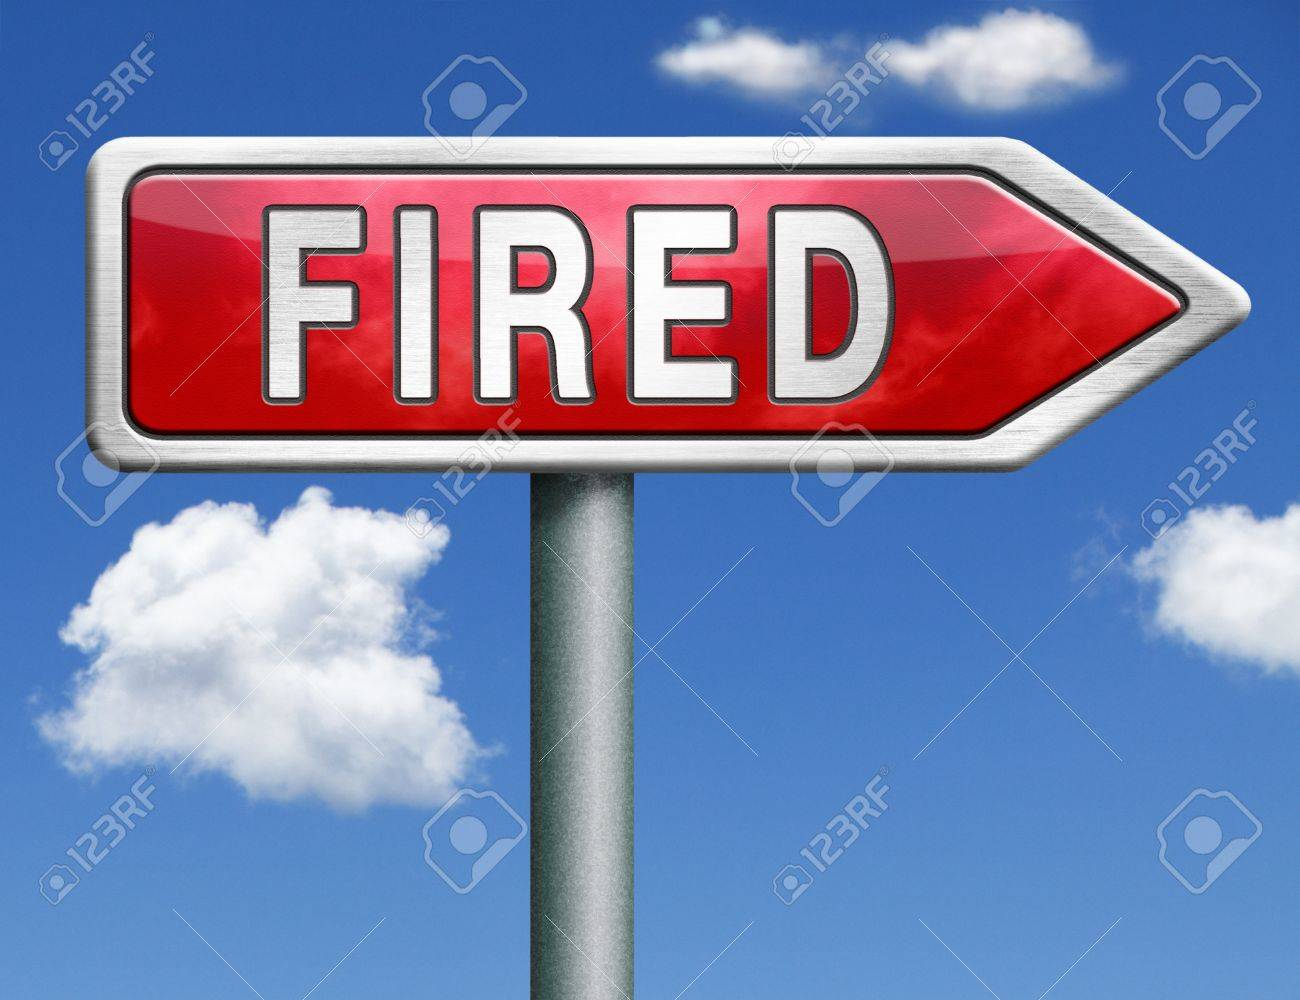 fired getting fired loose your job you re fired loss work jobless stock photo fired getting fired loose your job you re fired loss work jobless red road sign arrow